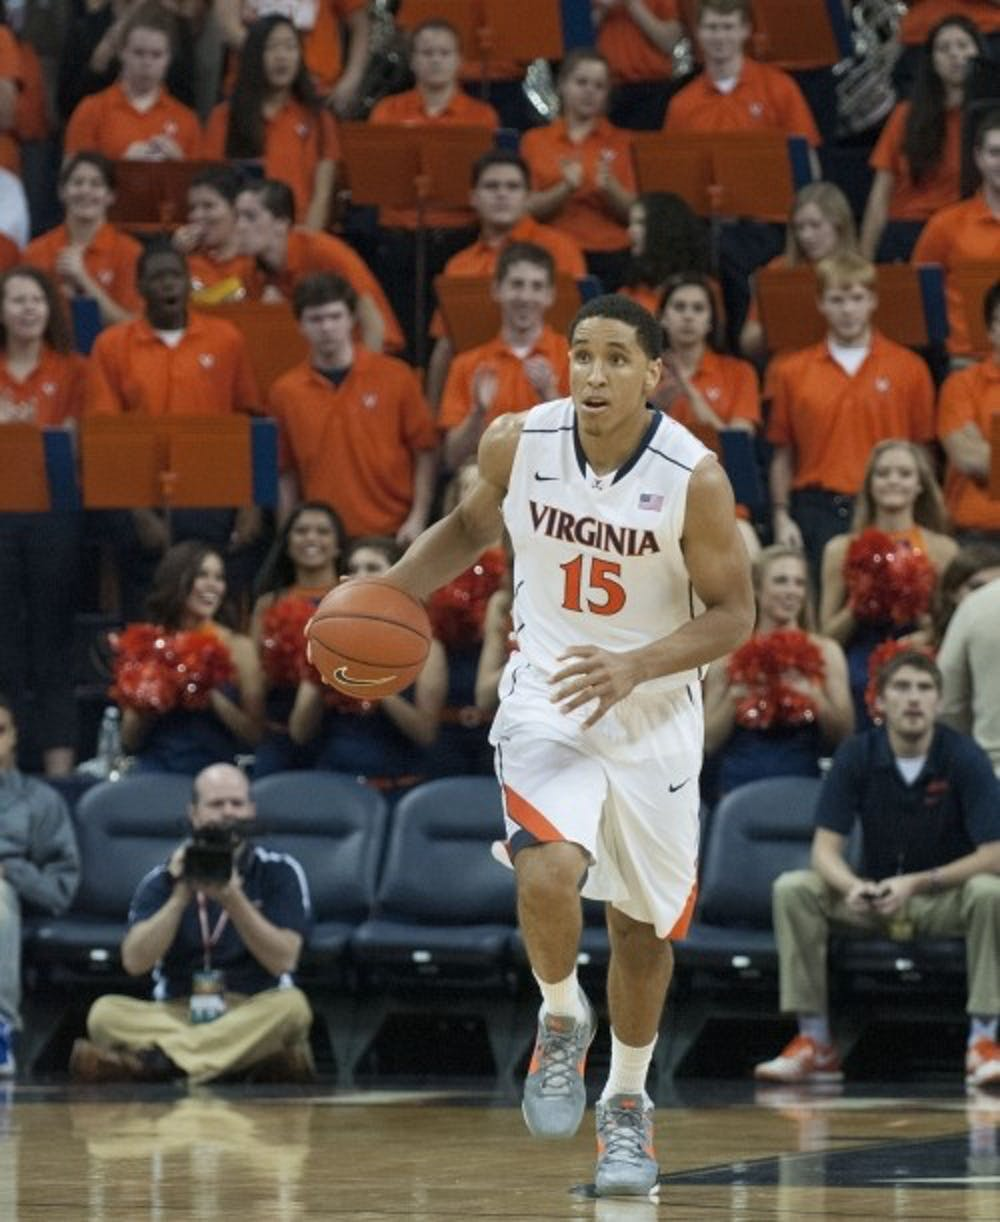 <p>Senior guard Malcolm Brogdon earned first-team All-ACC and second-team All-American honors last season, when he was the only Cavalier to start all 34 of Virginia's&nbsp;games.&nbsp;</p>